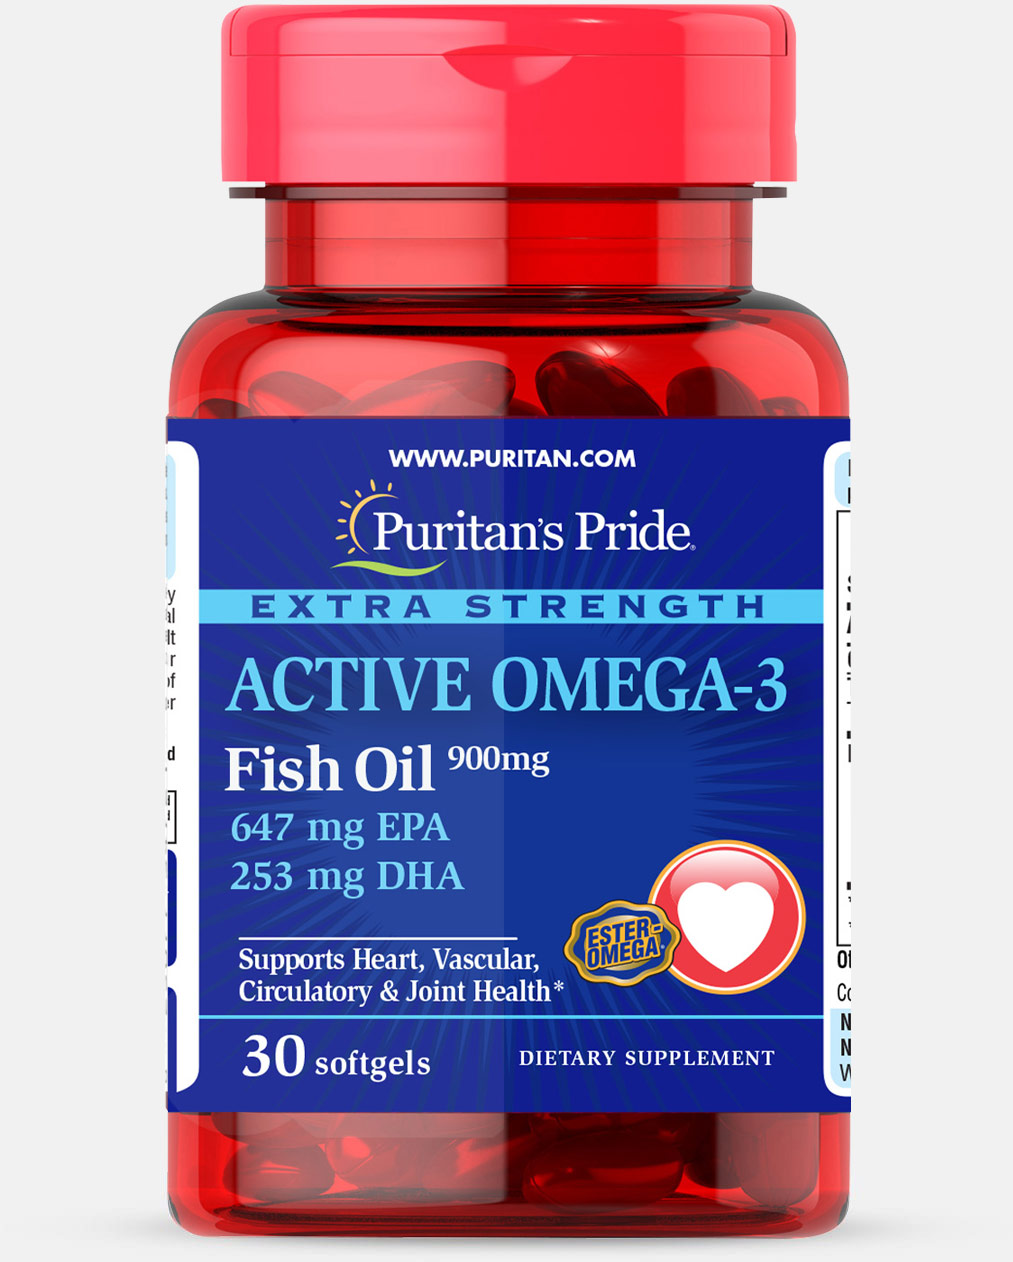 Extra Strength Active Omega-3 Fish Oil